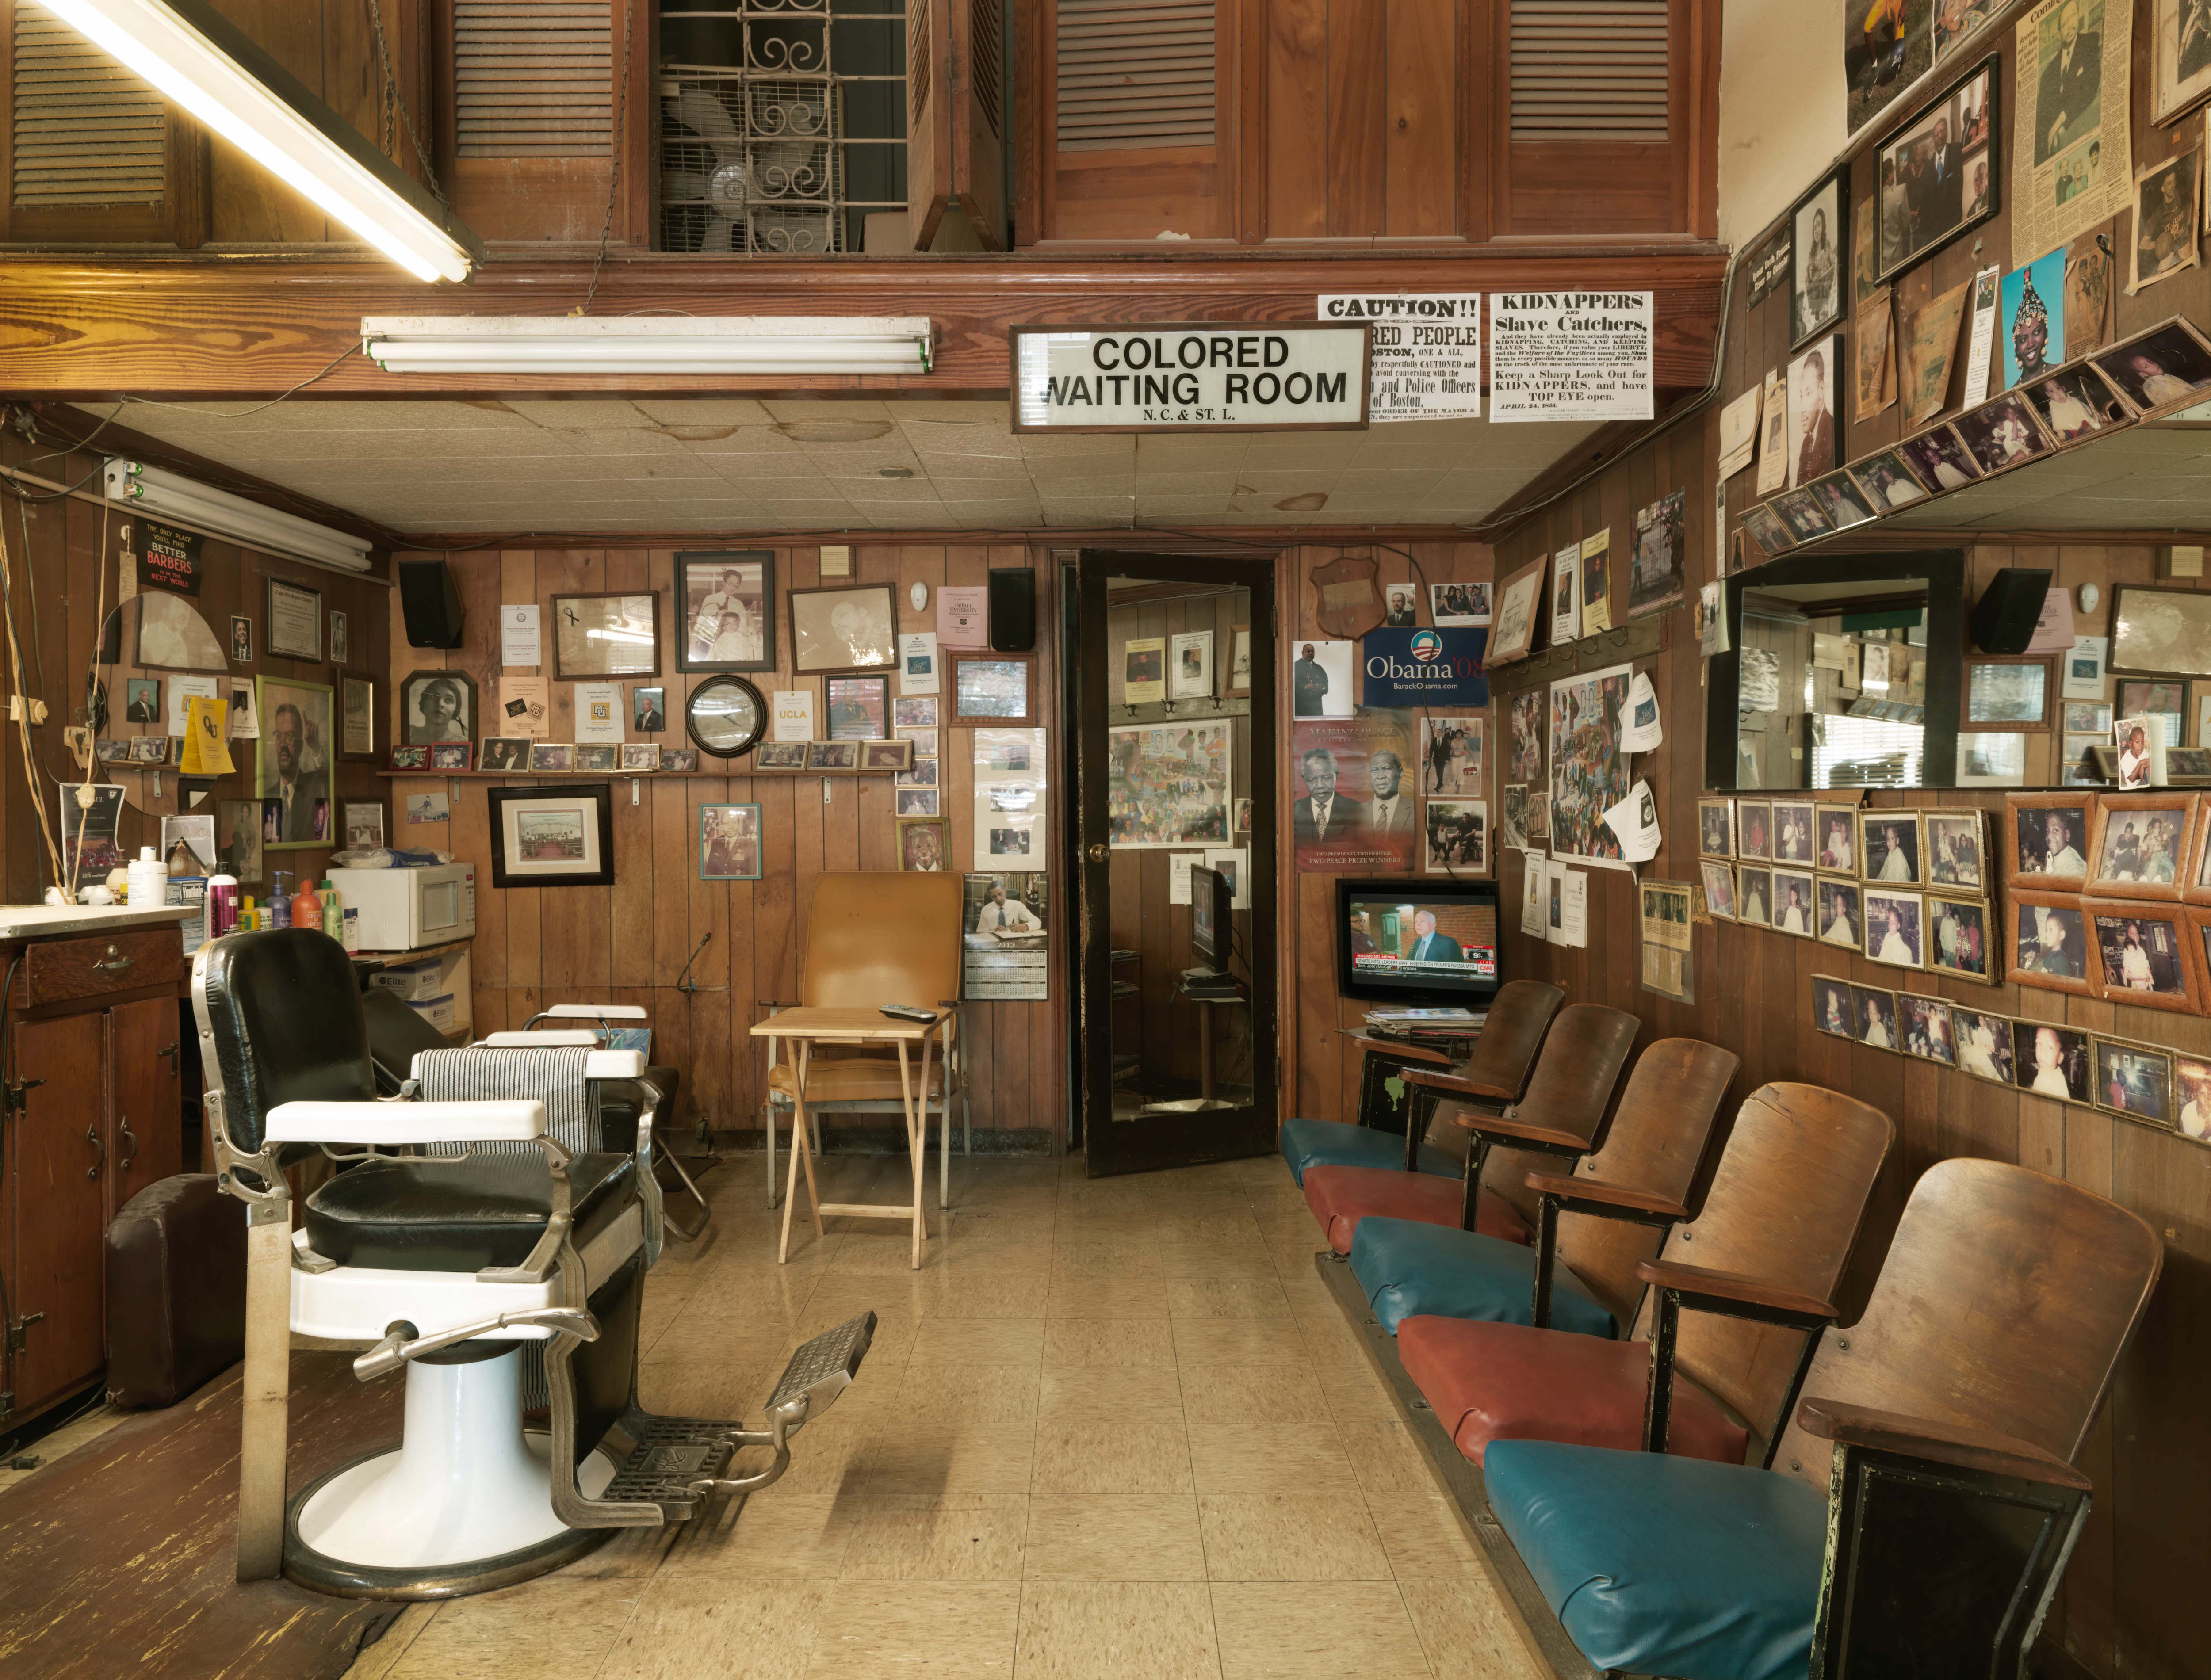 The preserved interior of a '50s area barber shop in Alabama, including a bank of wooden chairs, a barber chair, and a photo collection lining the walls.